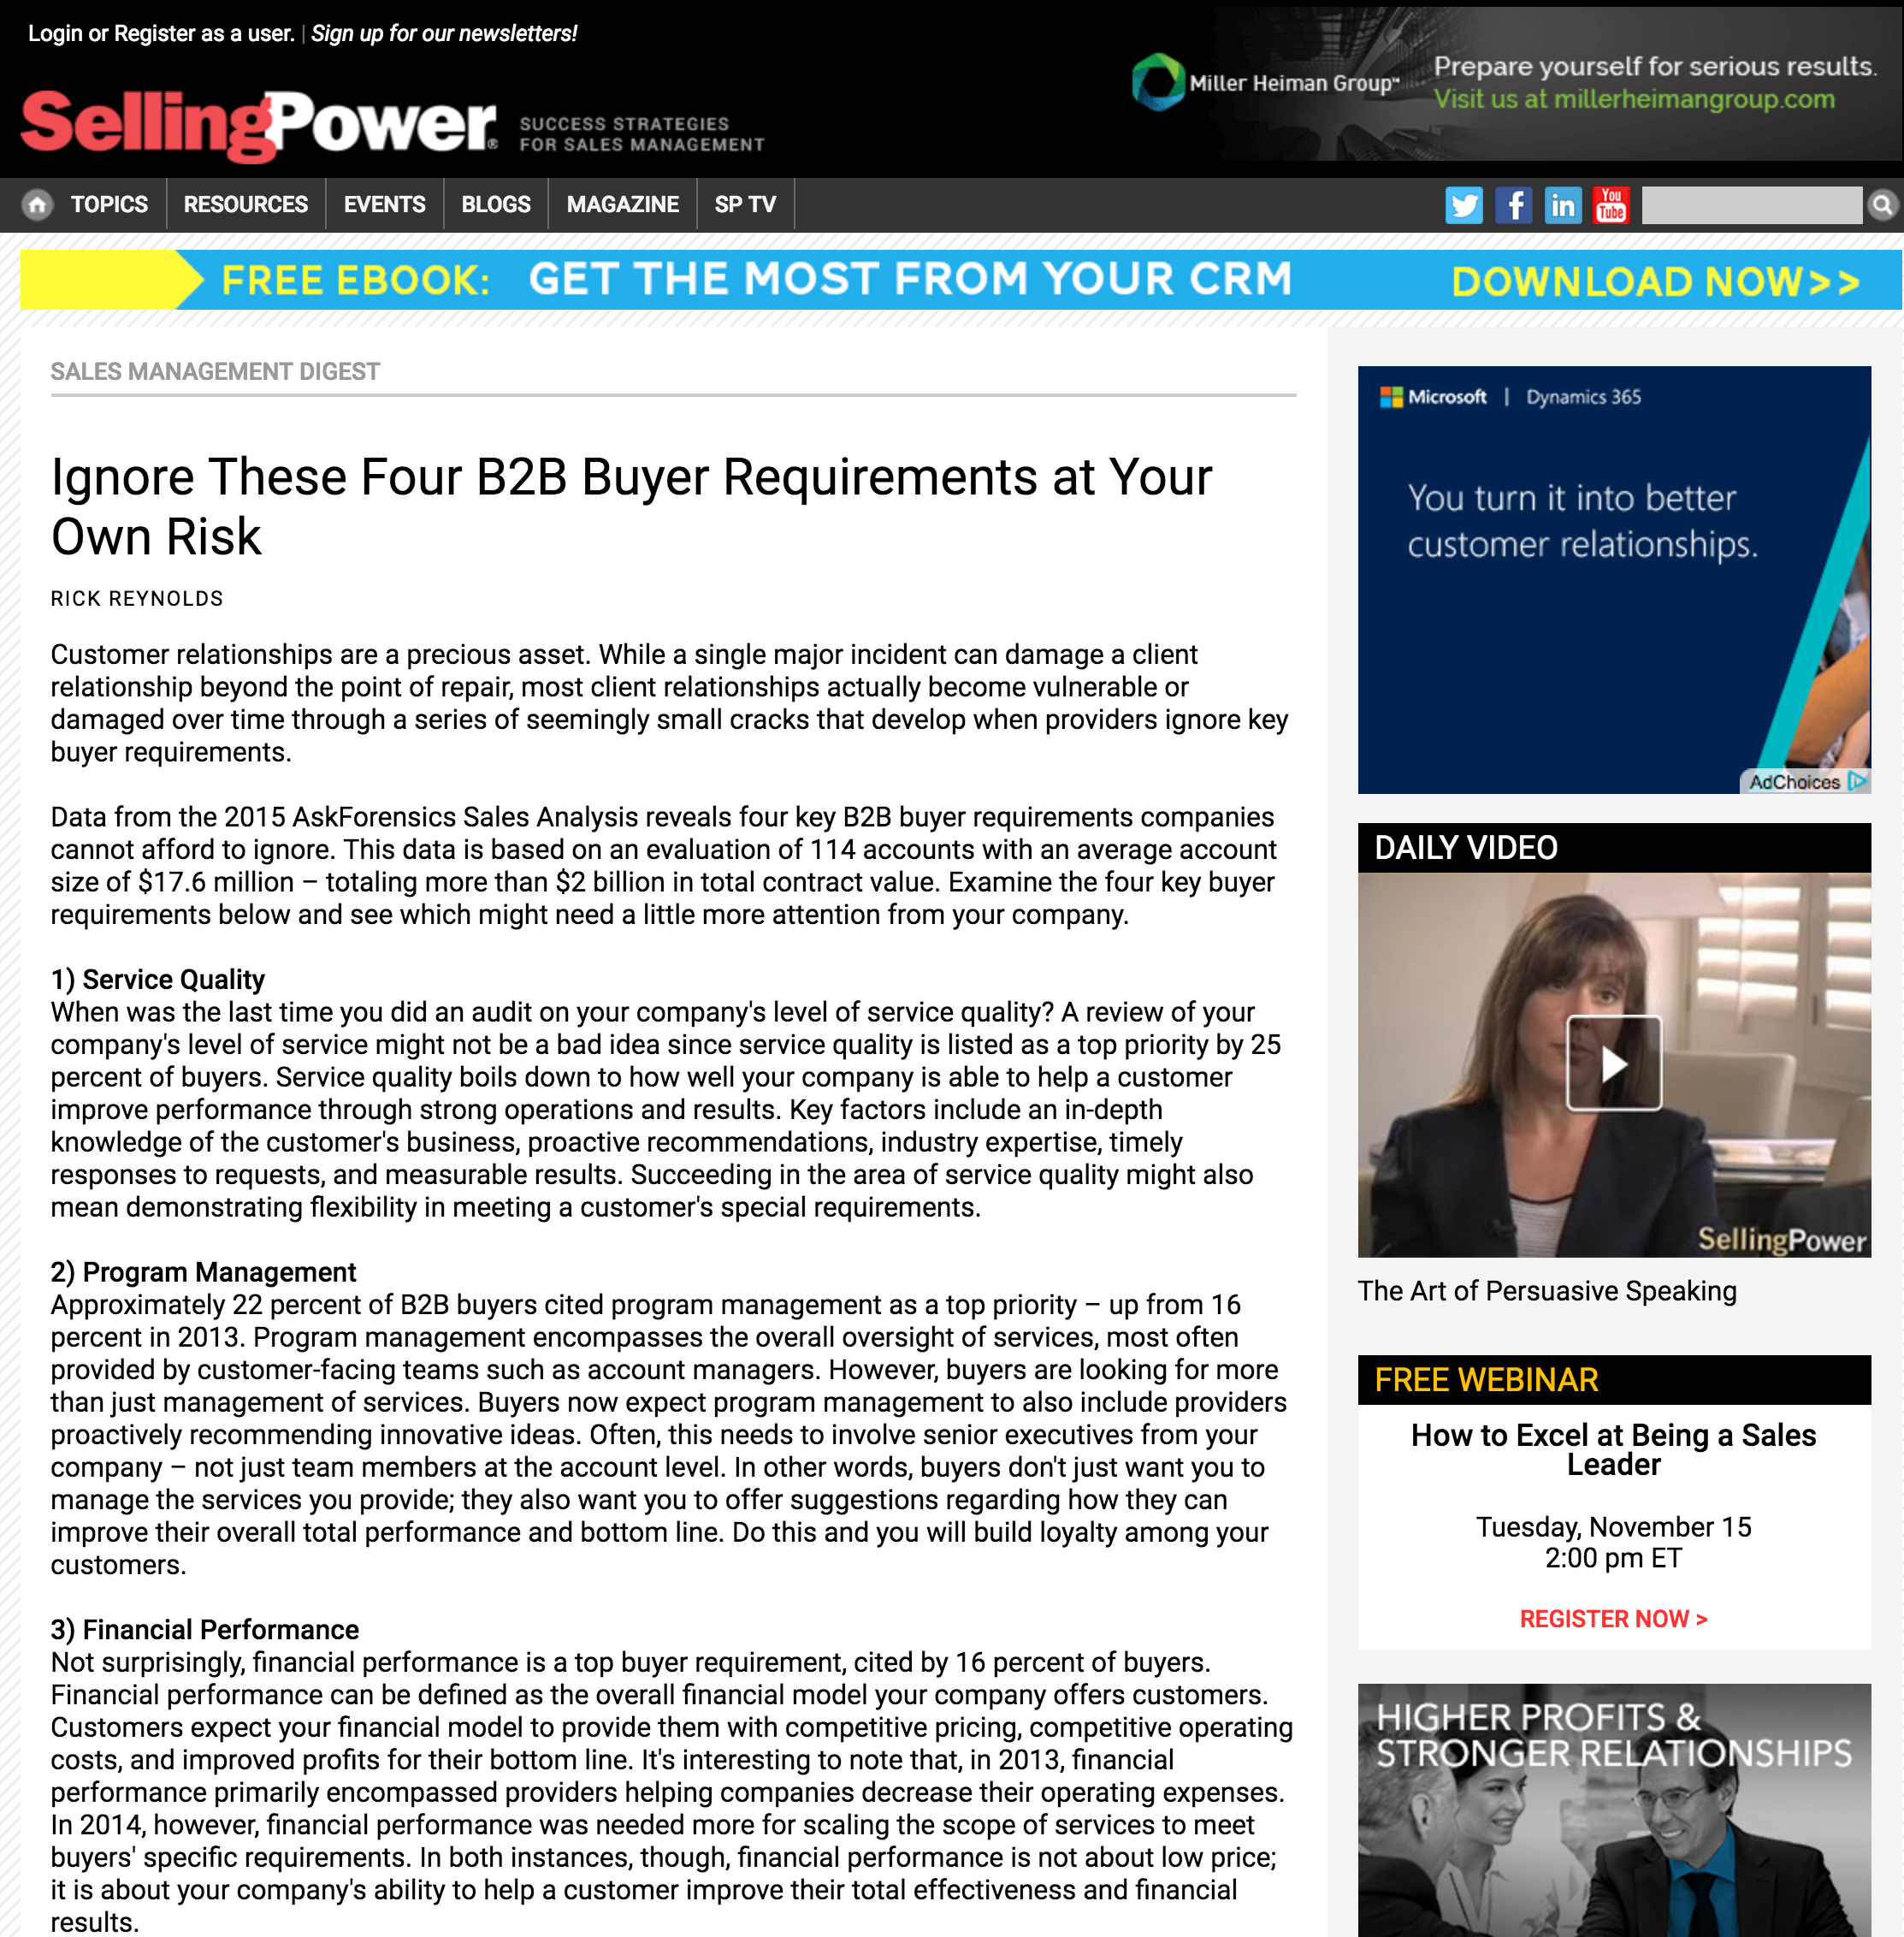 SellingPower (Sales Management Digest | September 2015